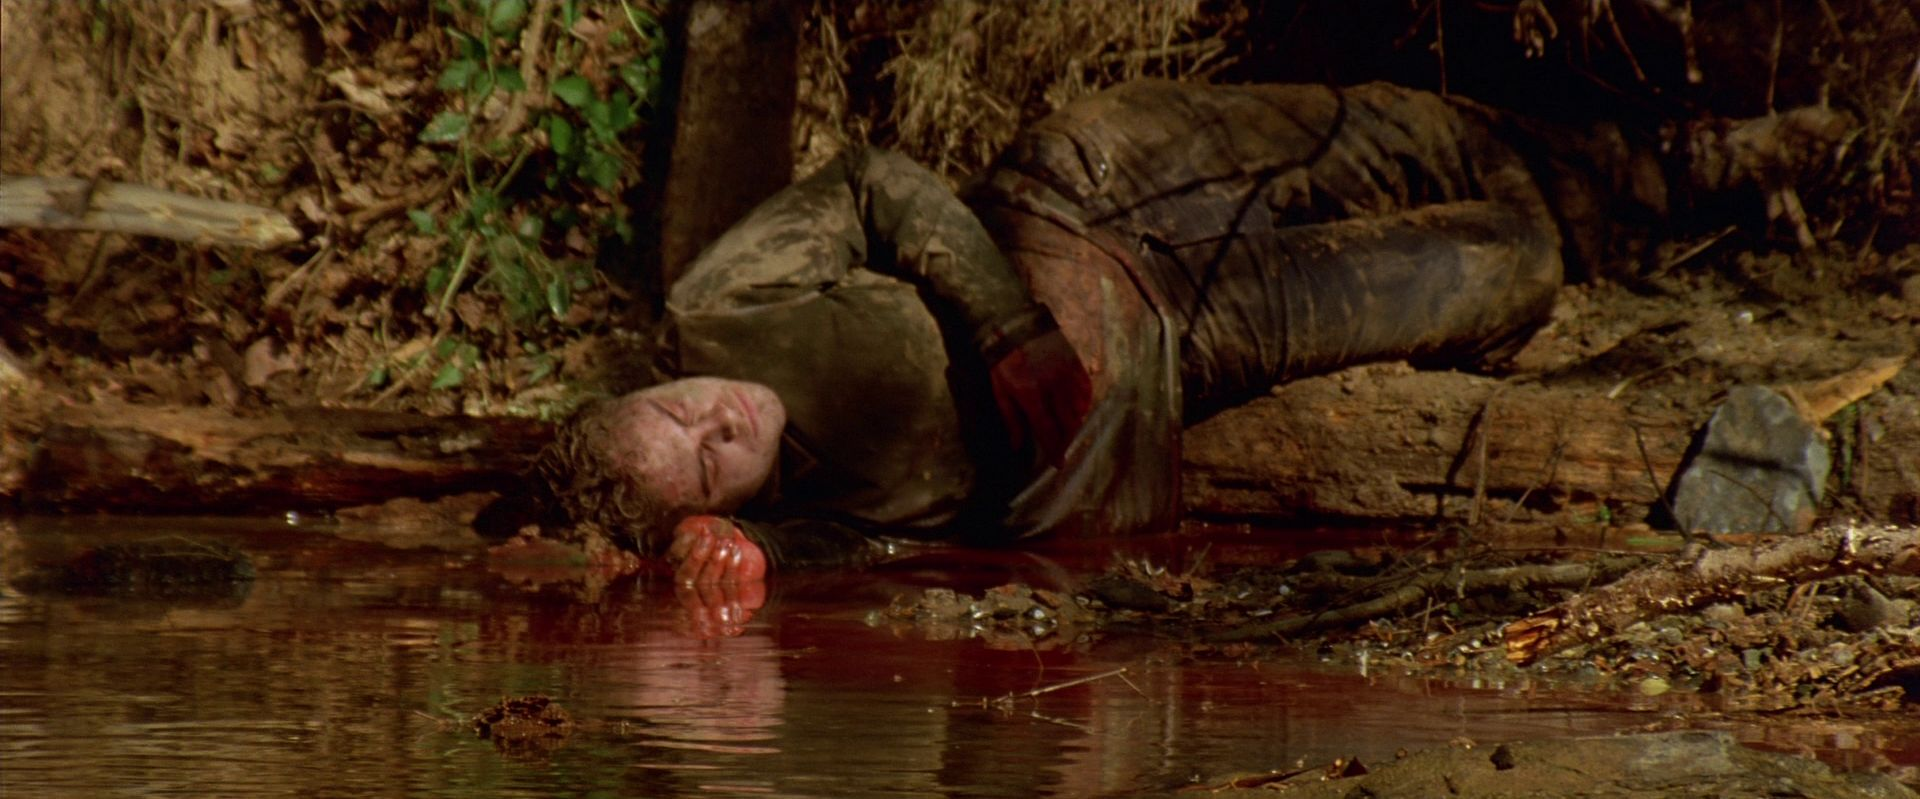 Infected body pollutes the water in Cabin Fever (2002)